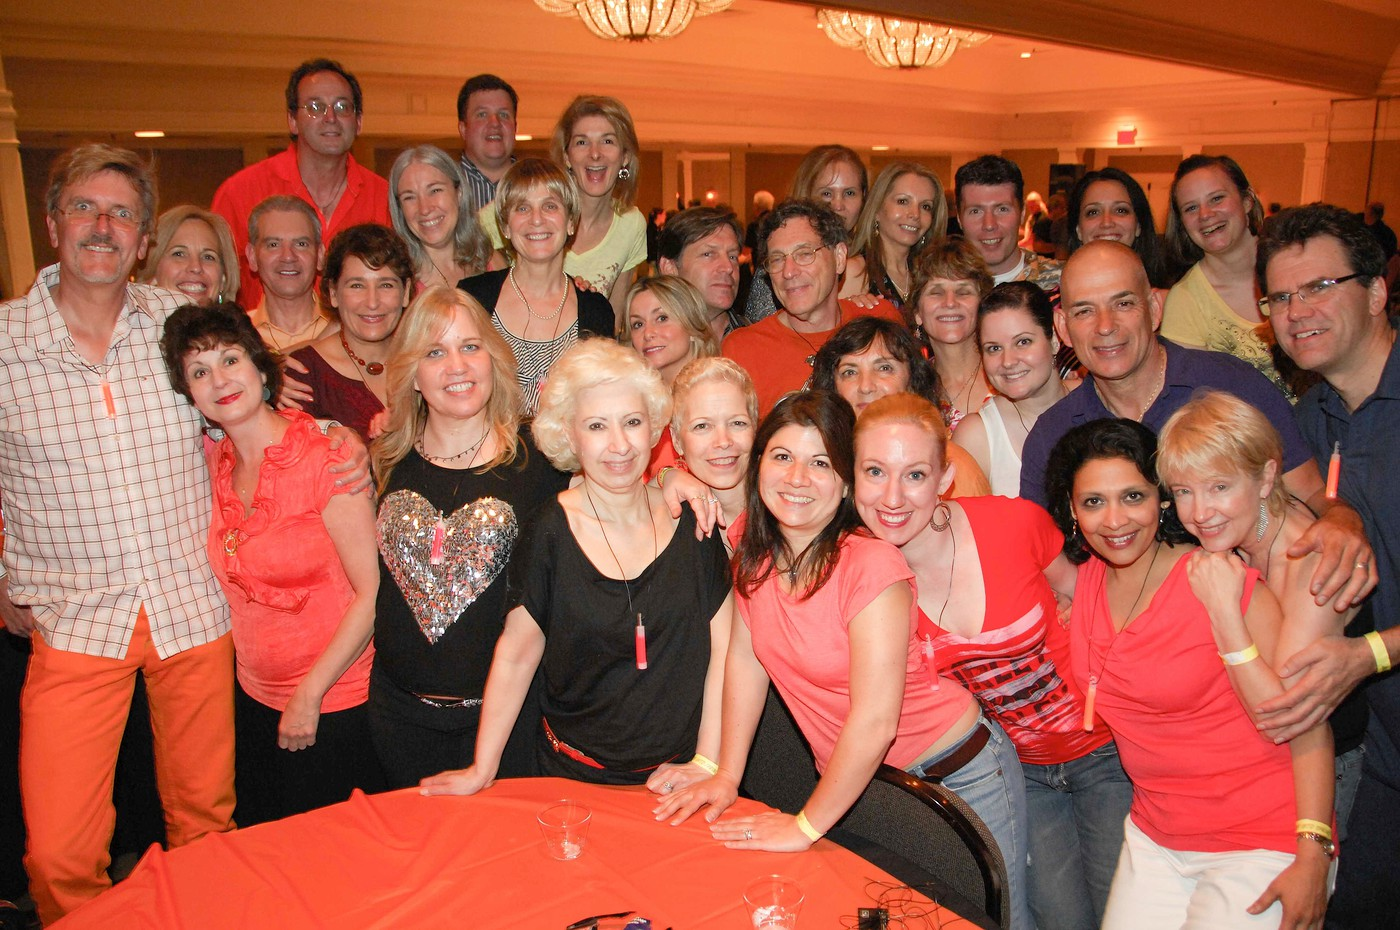 SwingShoes Group Picture at Swingin Into Spring on May 5, 2012